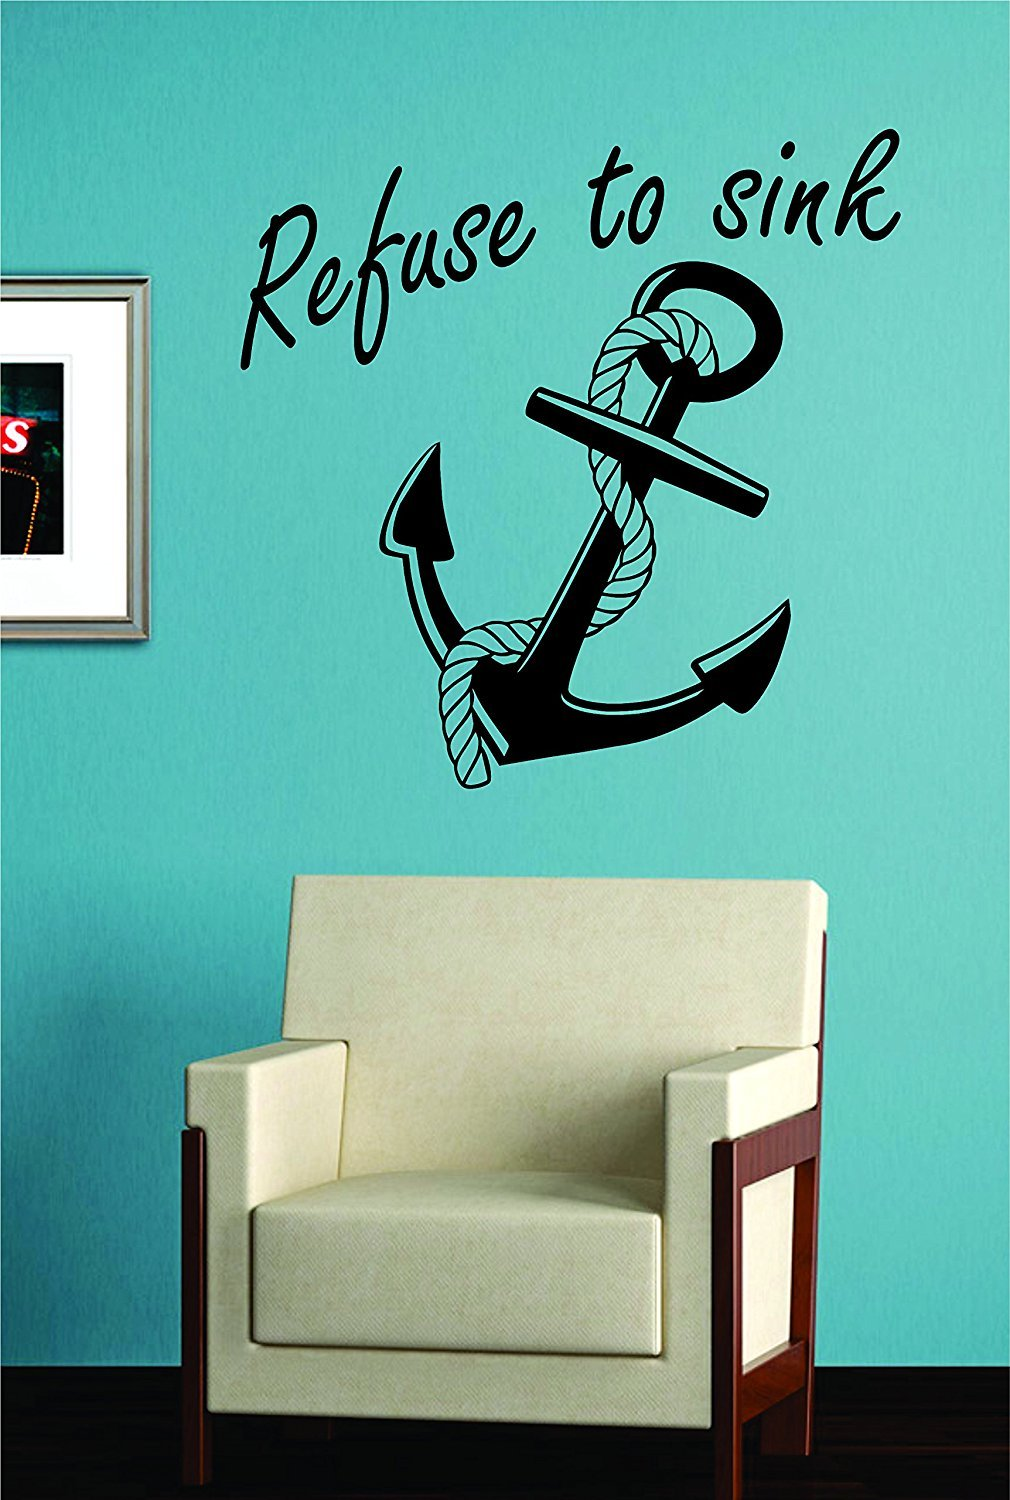 Refuse To Sink Anchor With Rope Quote Design Decal Sticker Wall Vinyl Art Girl Boy Teen Baby By Biu Store by BIU Store